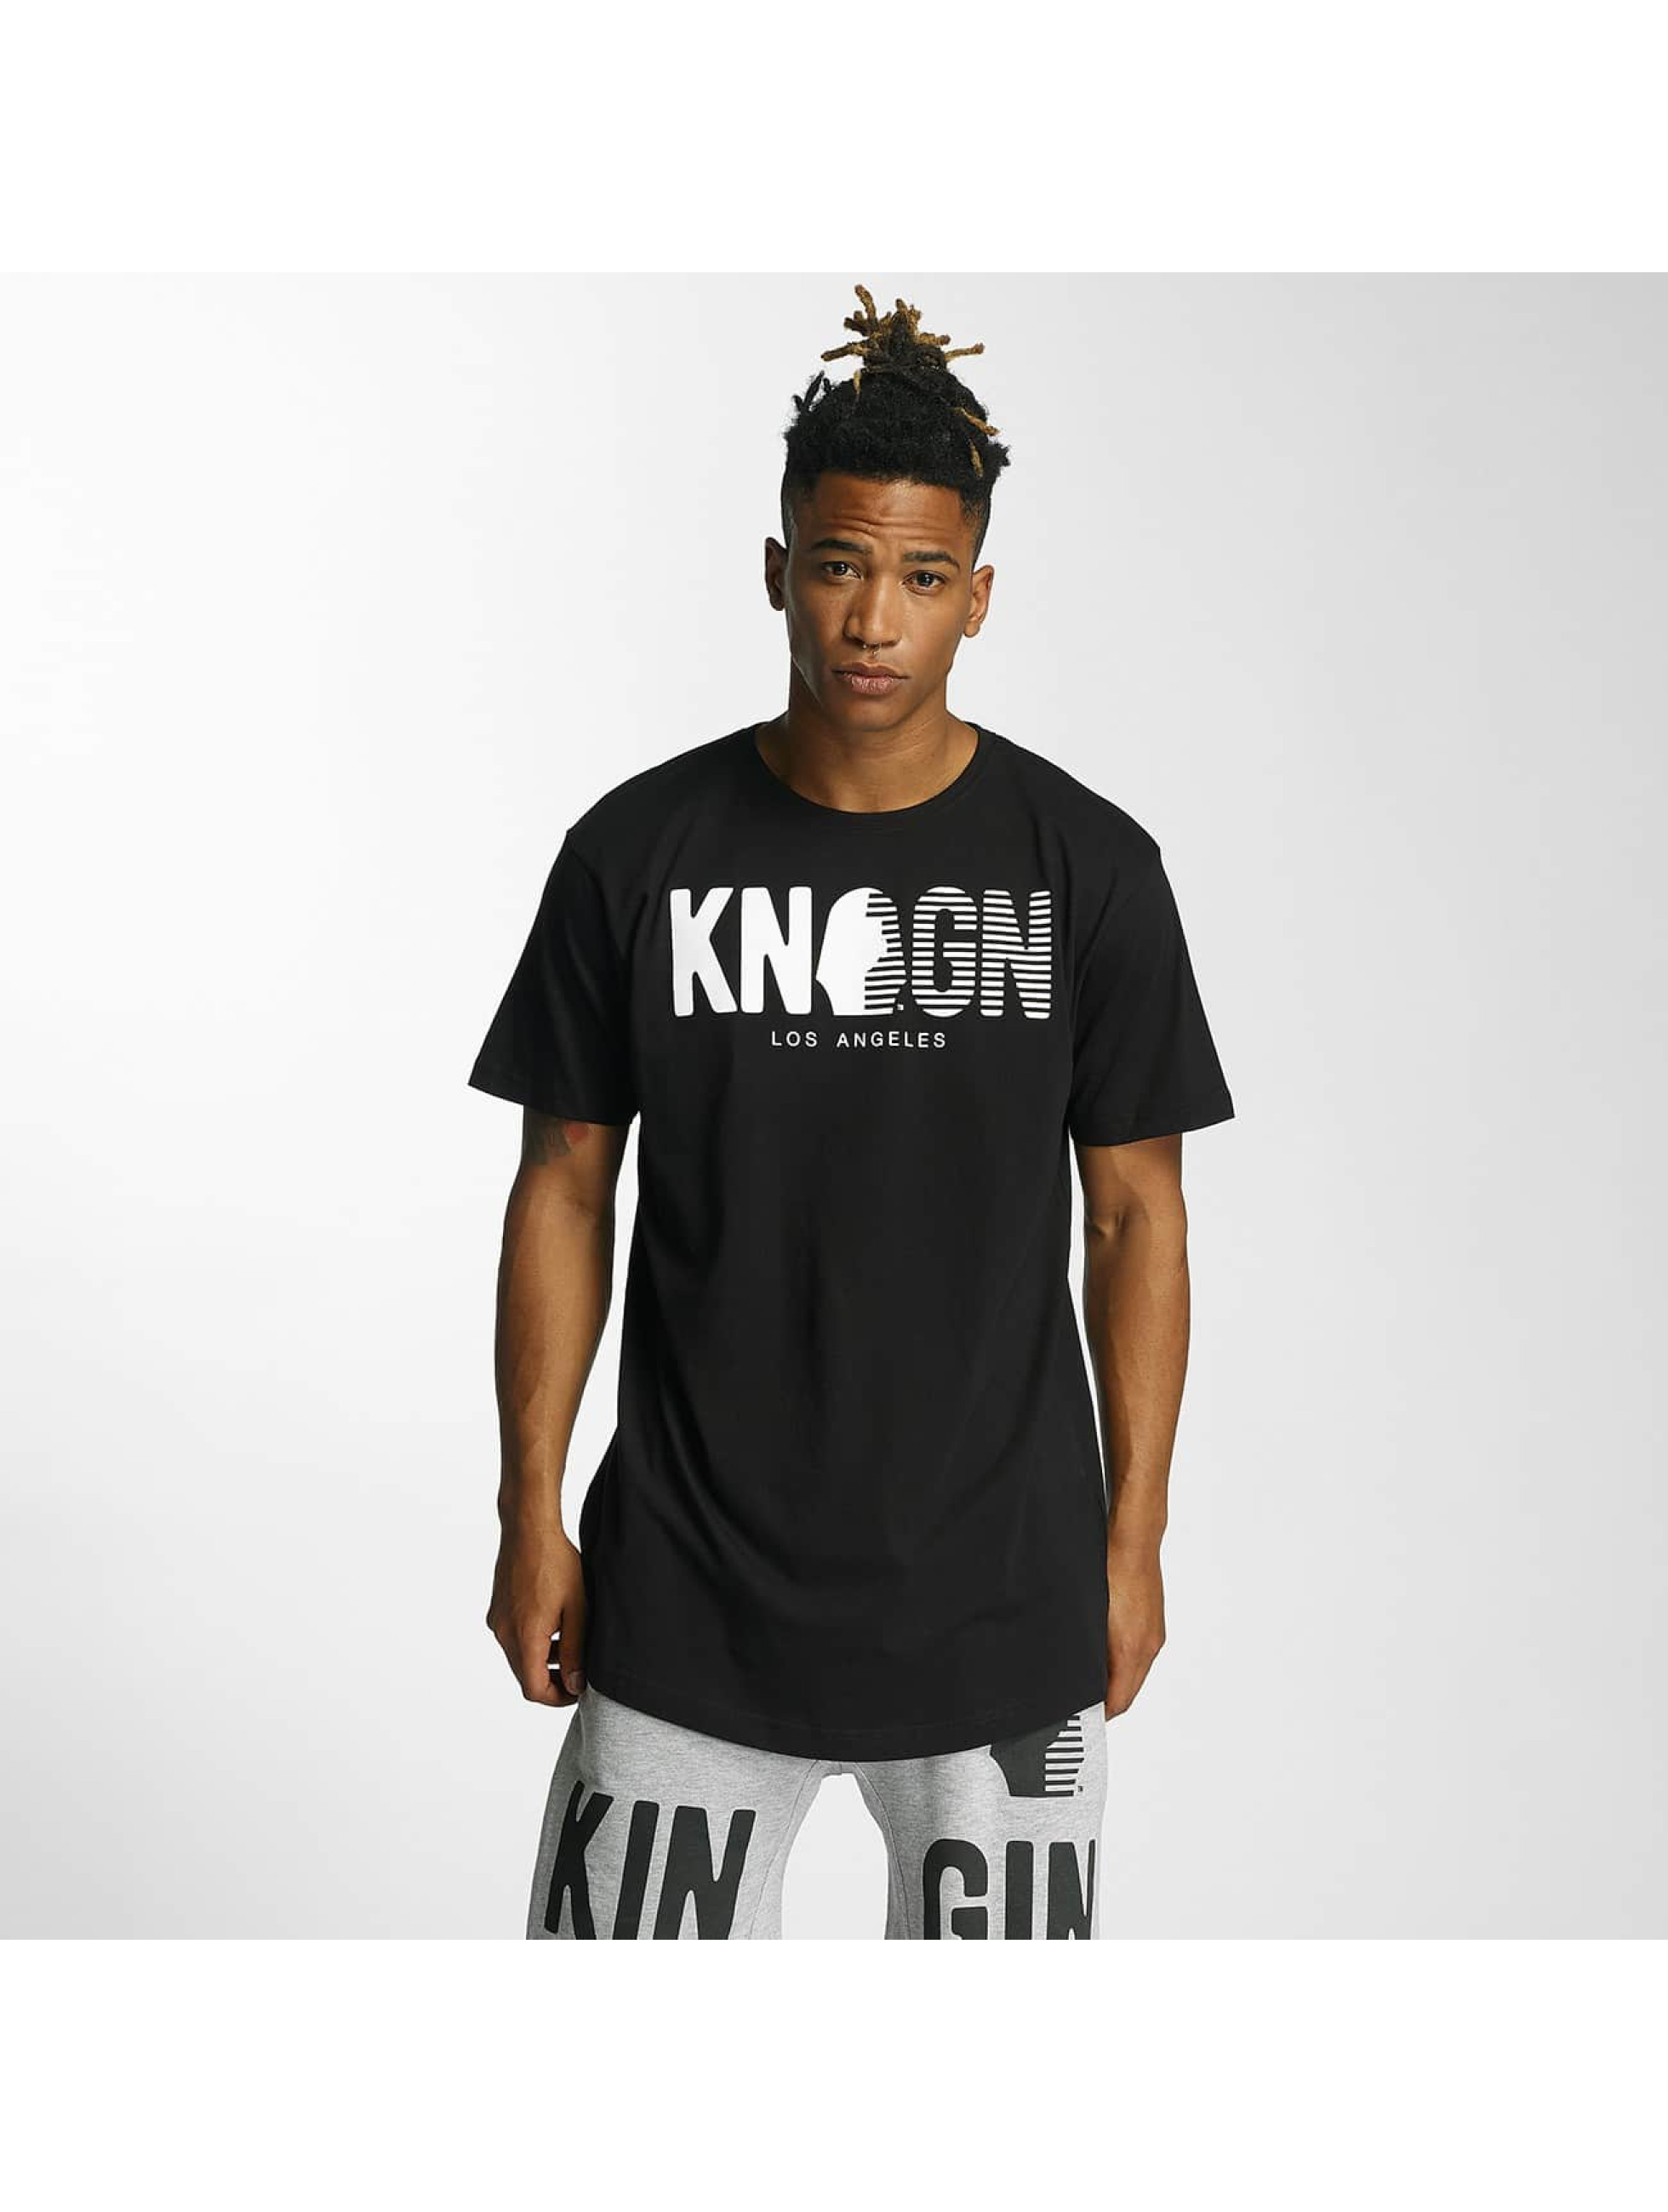 Kingin t-shirt Pharao zwart